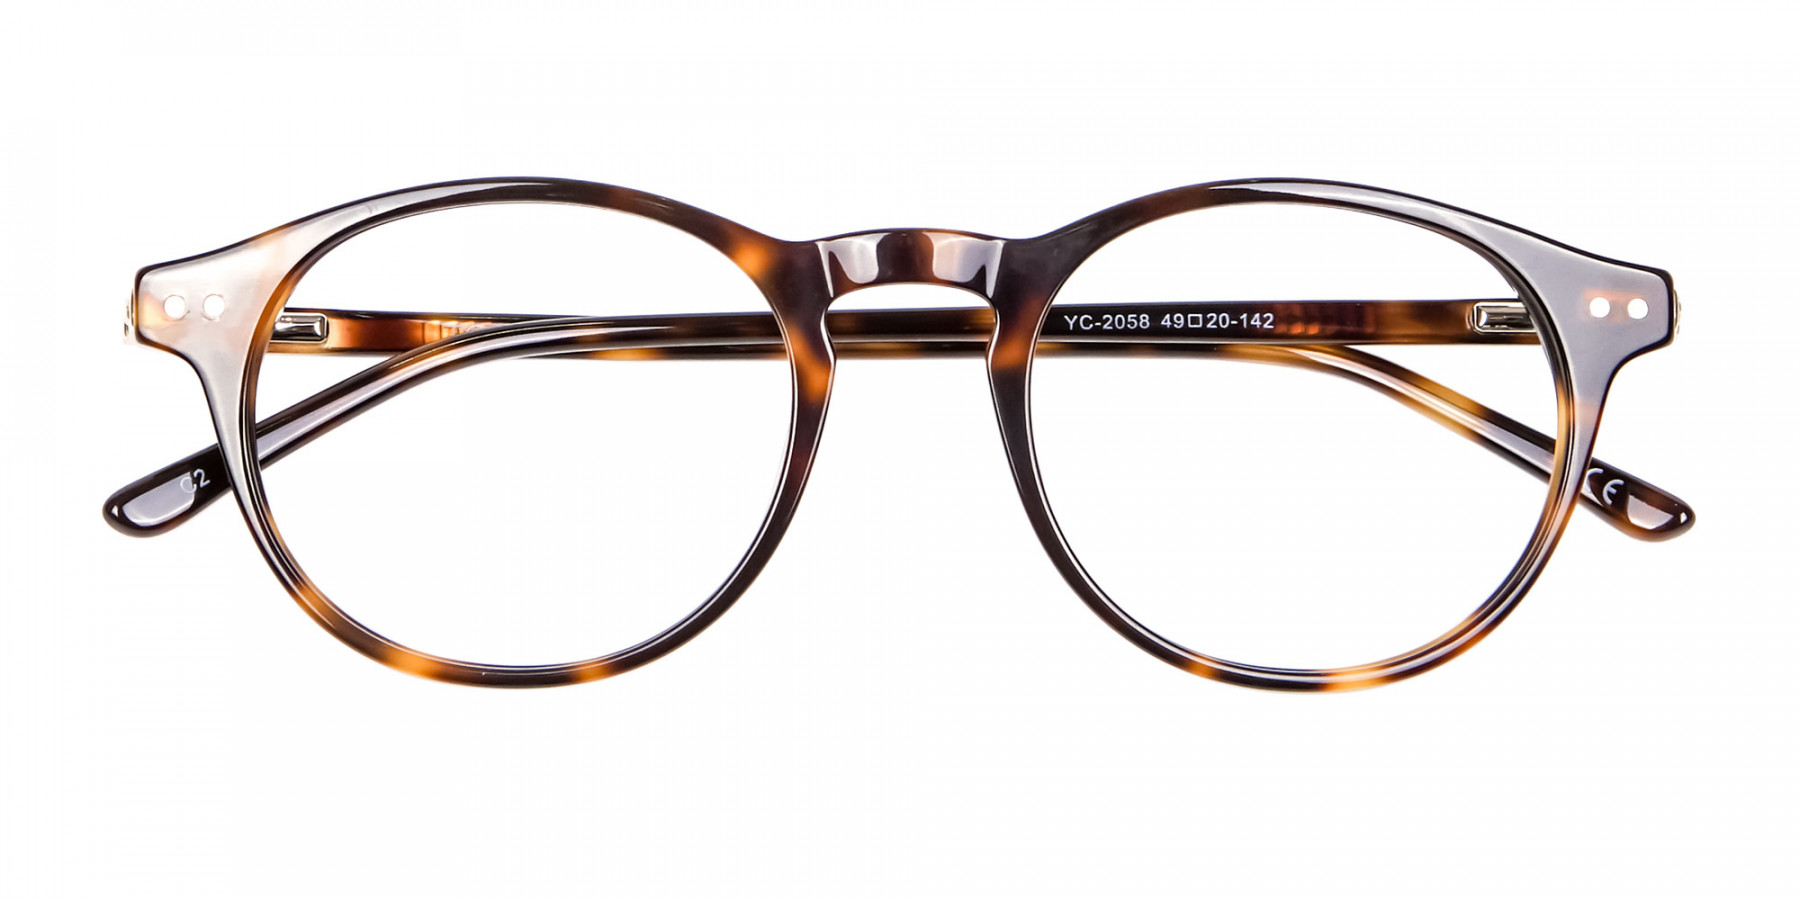 Havana and Tortoiseshell Rock Perfect Glasses